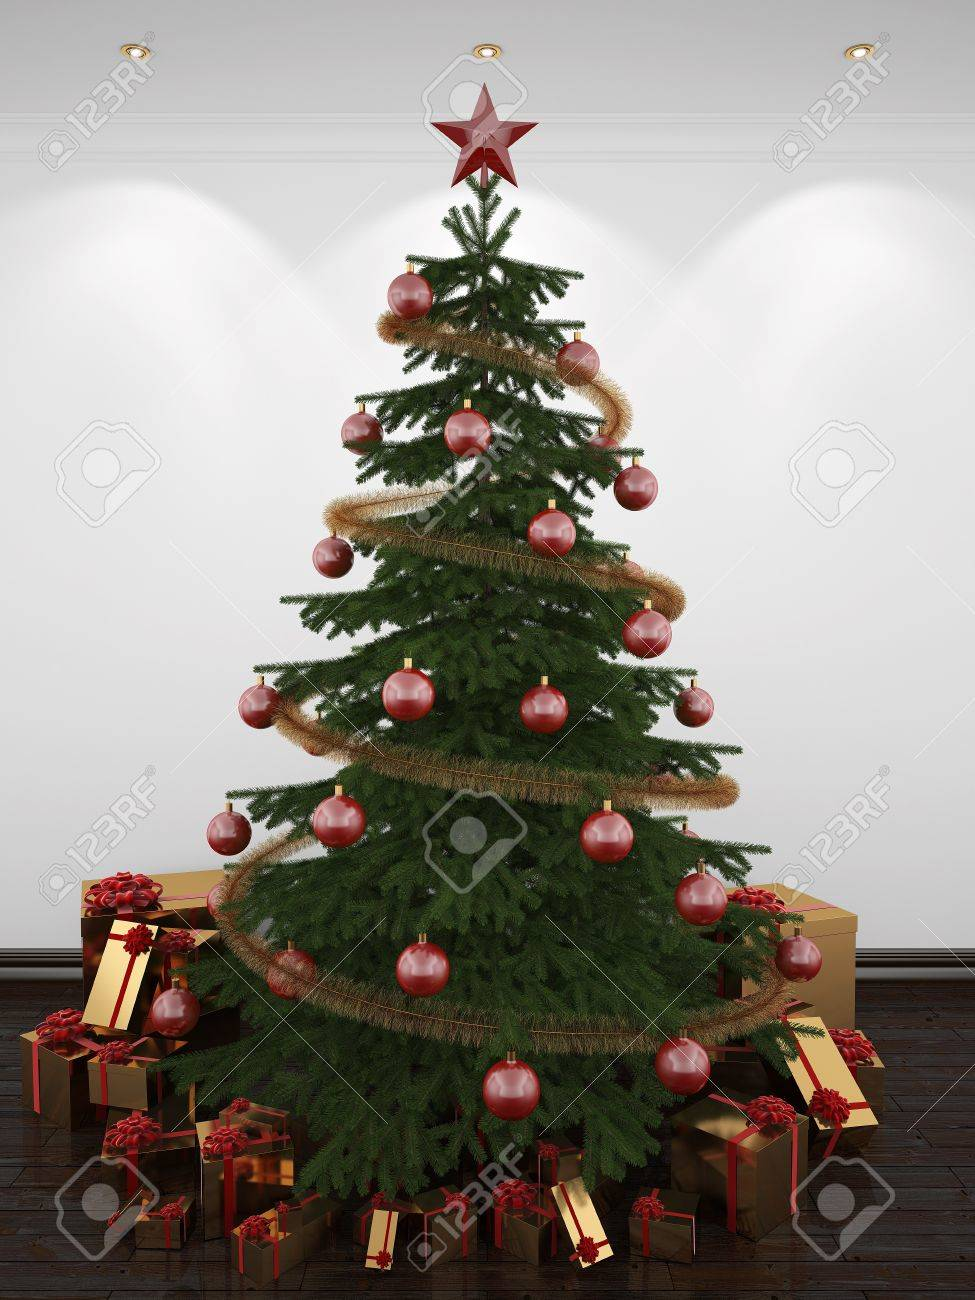 Christmas Tree Balloon.3d Christmas Tree In A White Room On The Dance Floor Decorated